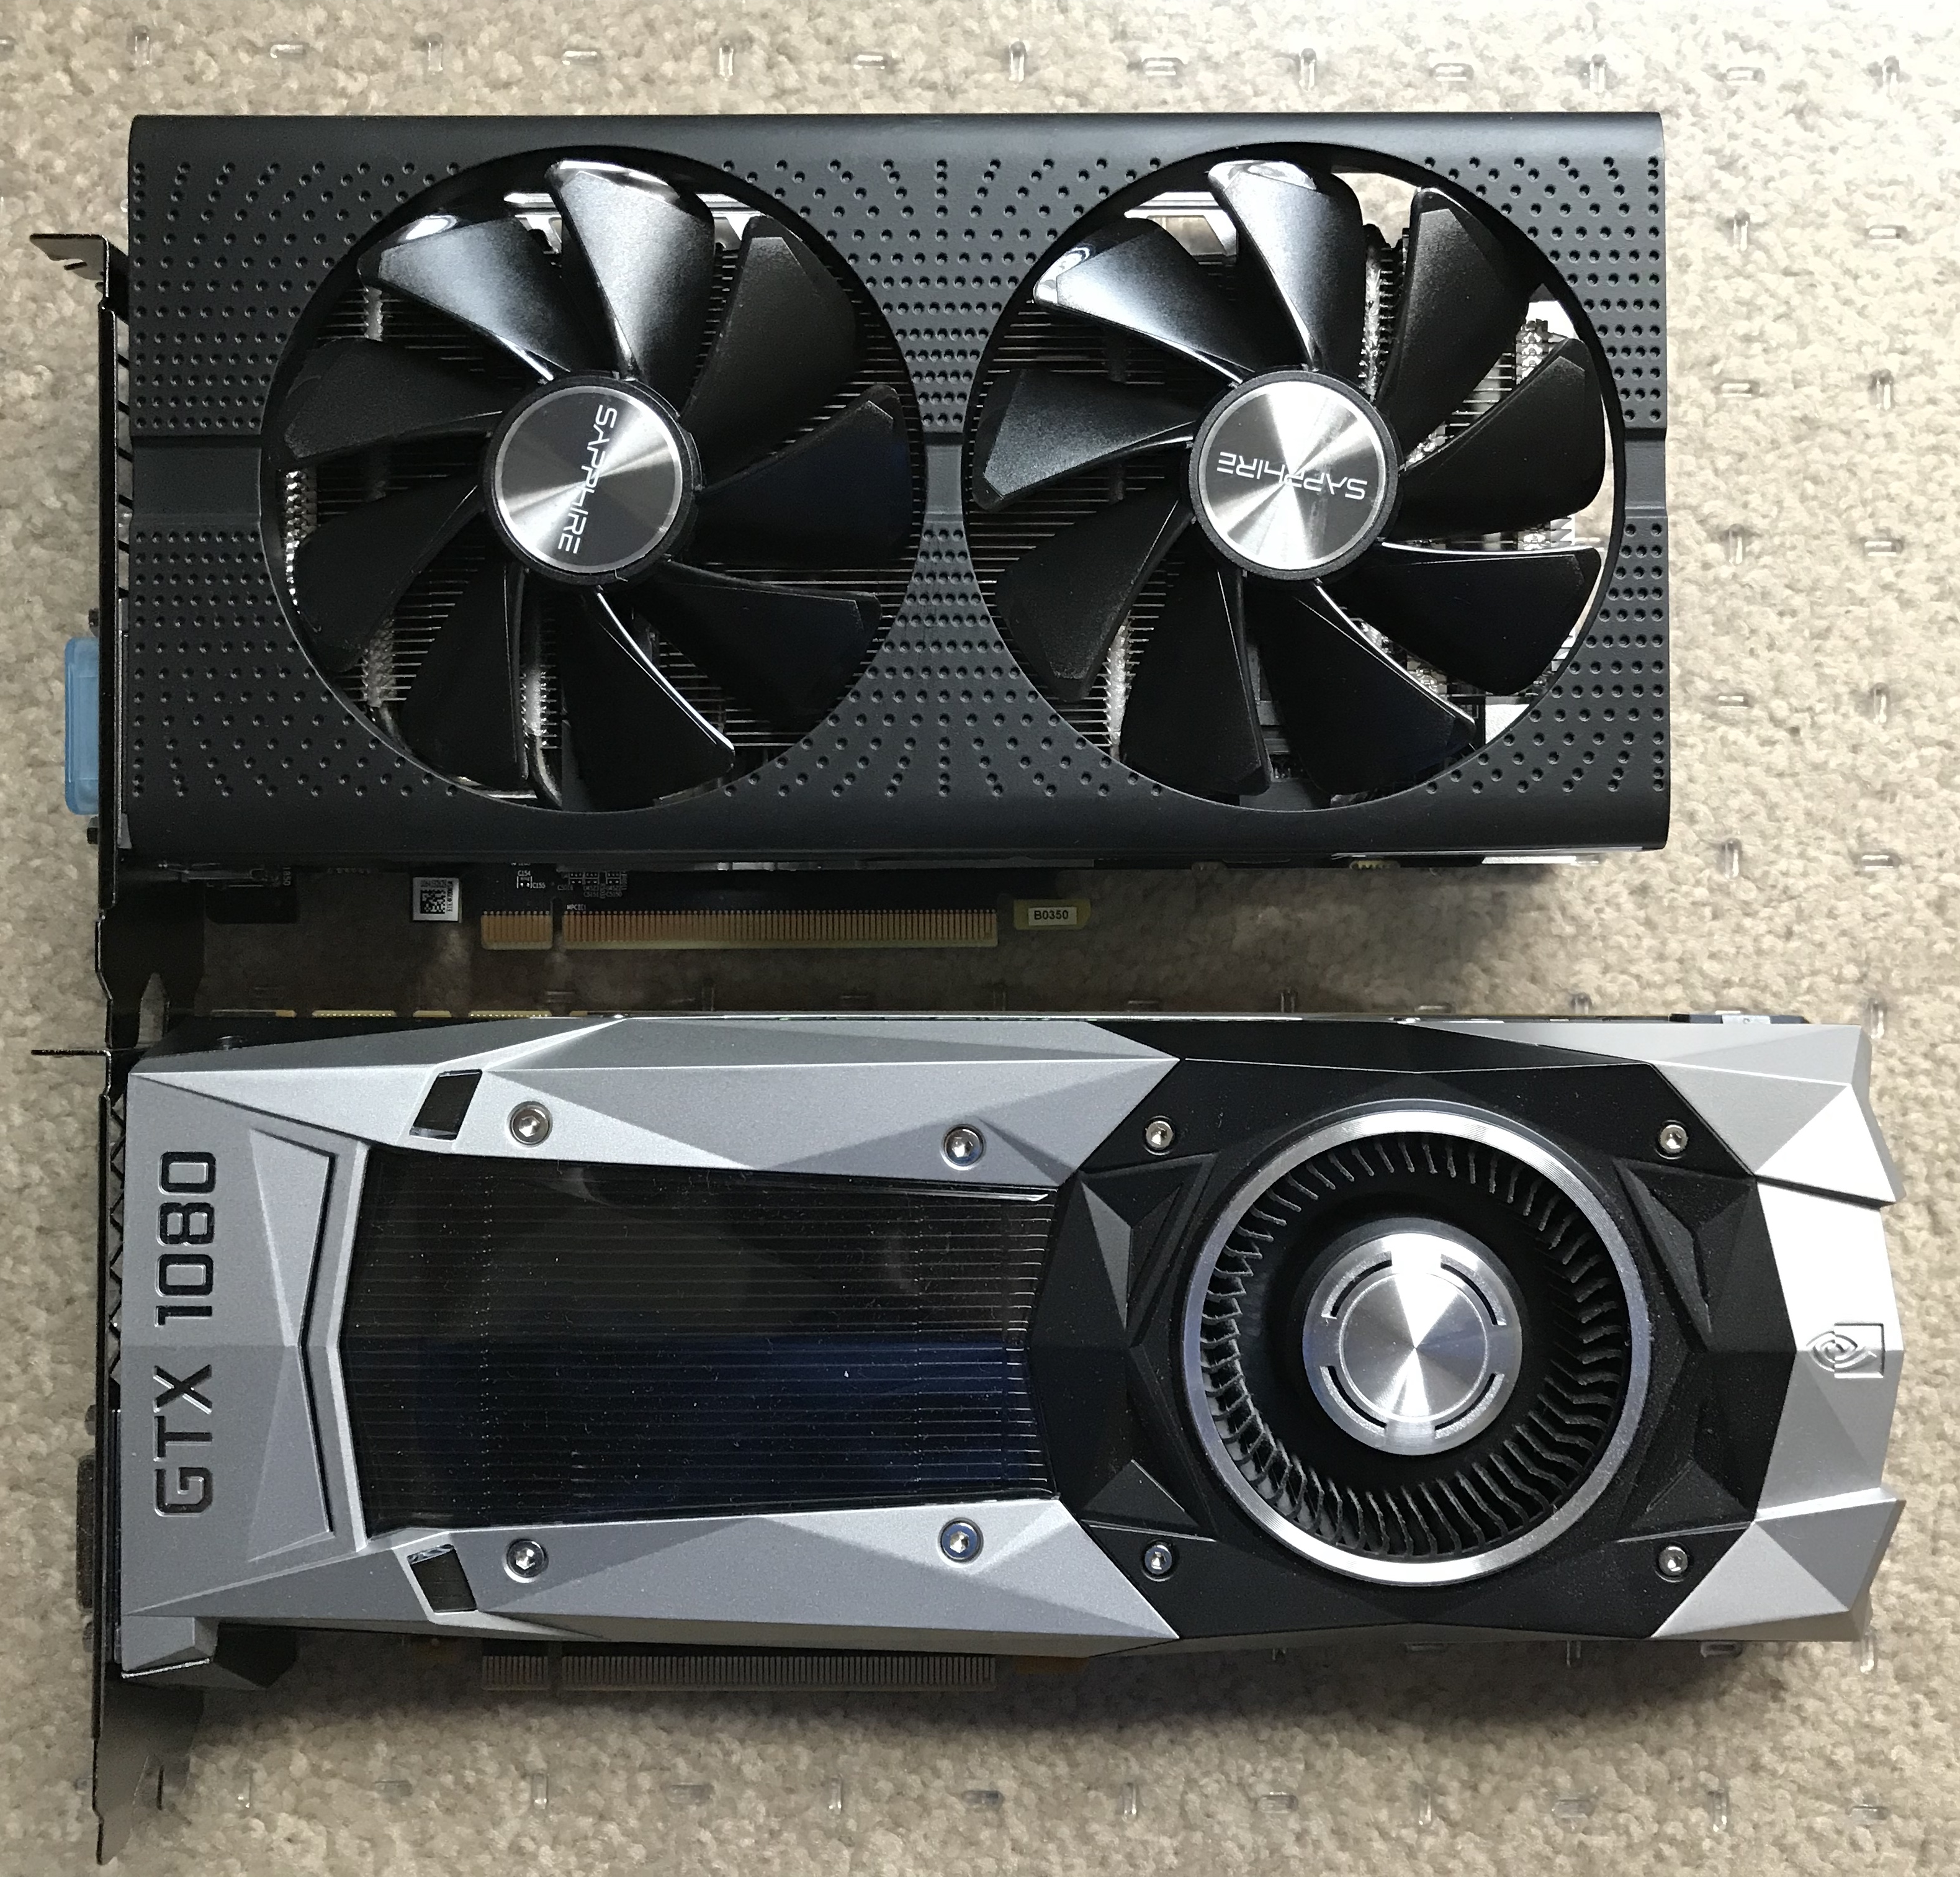 MP5,1 & Sapphire PULSE RX580 8GB - Spacer/Wedge for PCIe